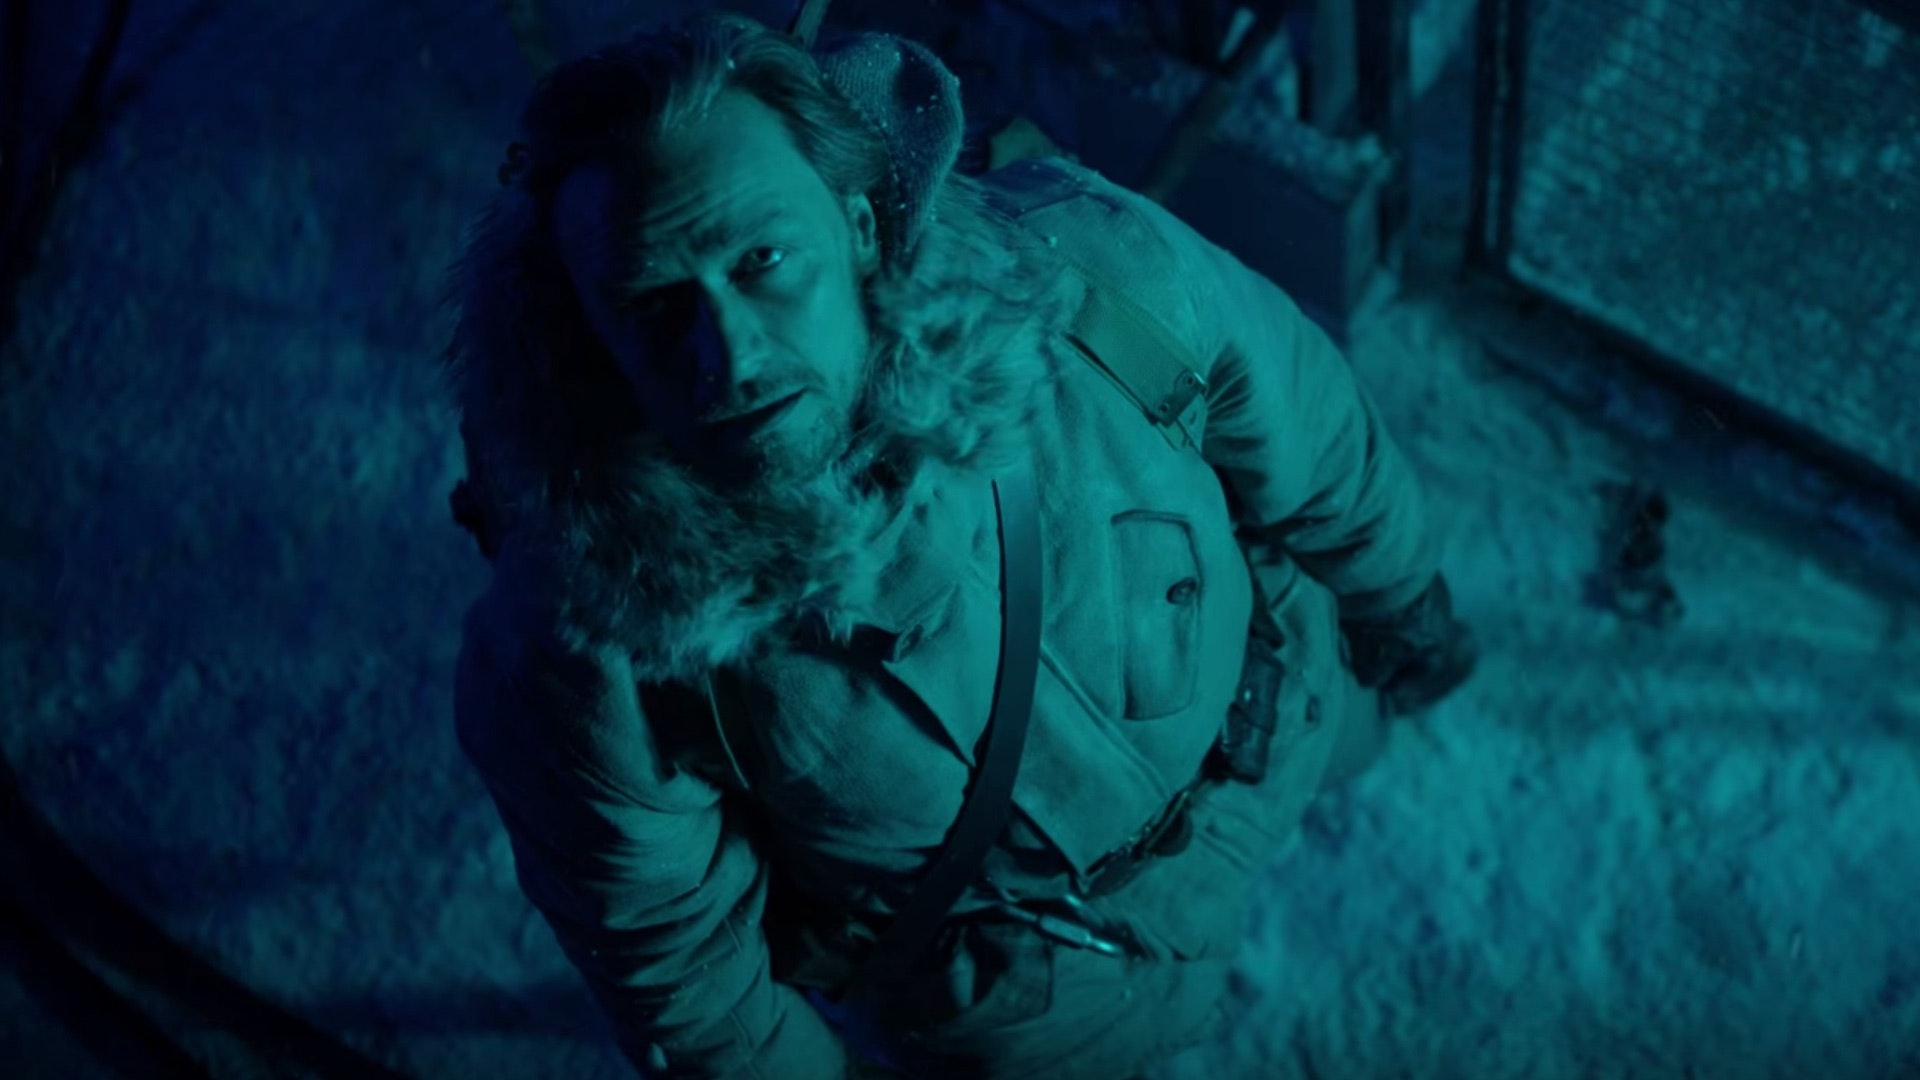 the-first-trailer-for-hbos-his-dark-materials-has-me-squeeing-like-a-fangirl-social